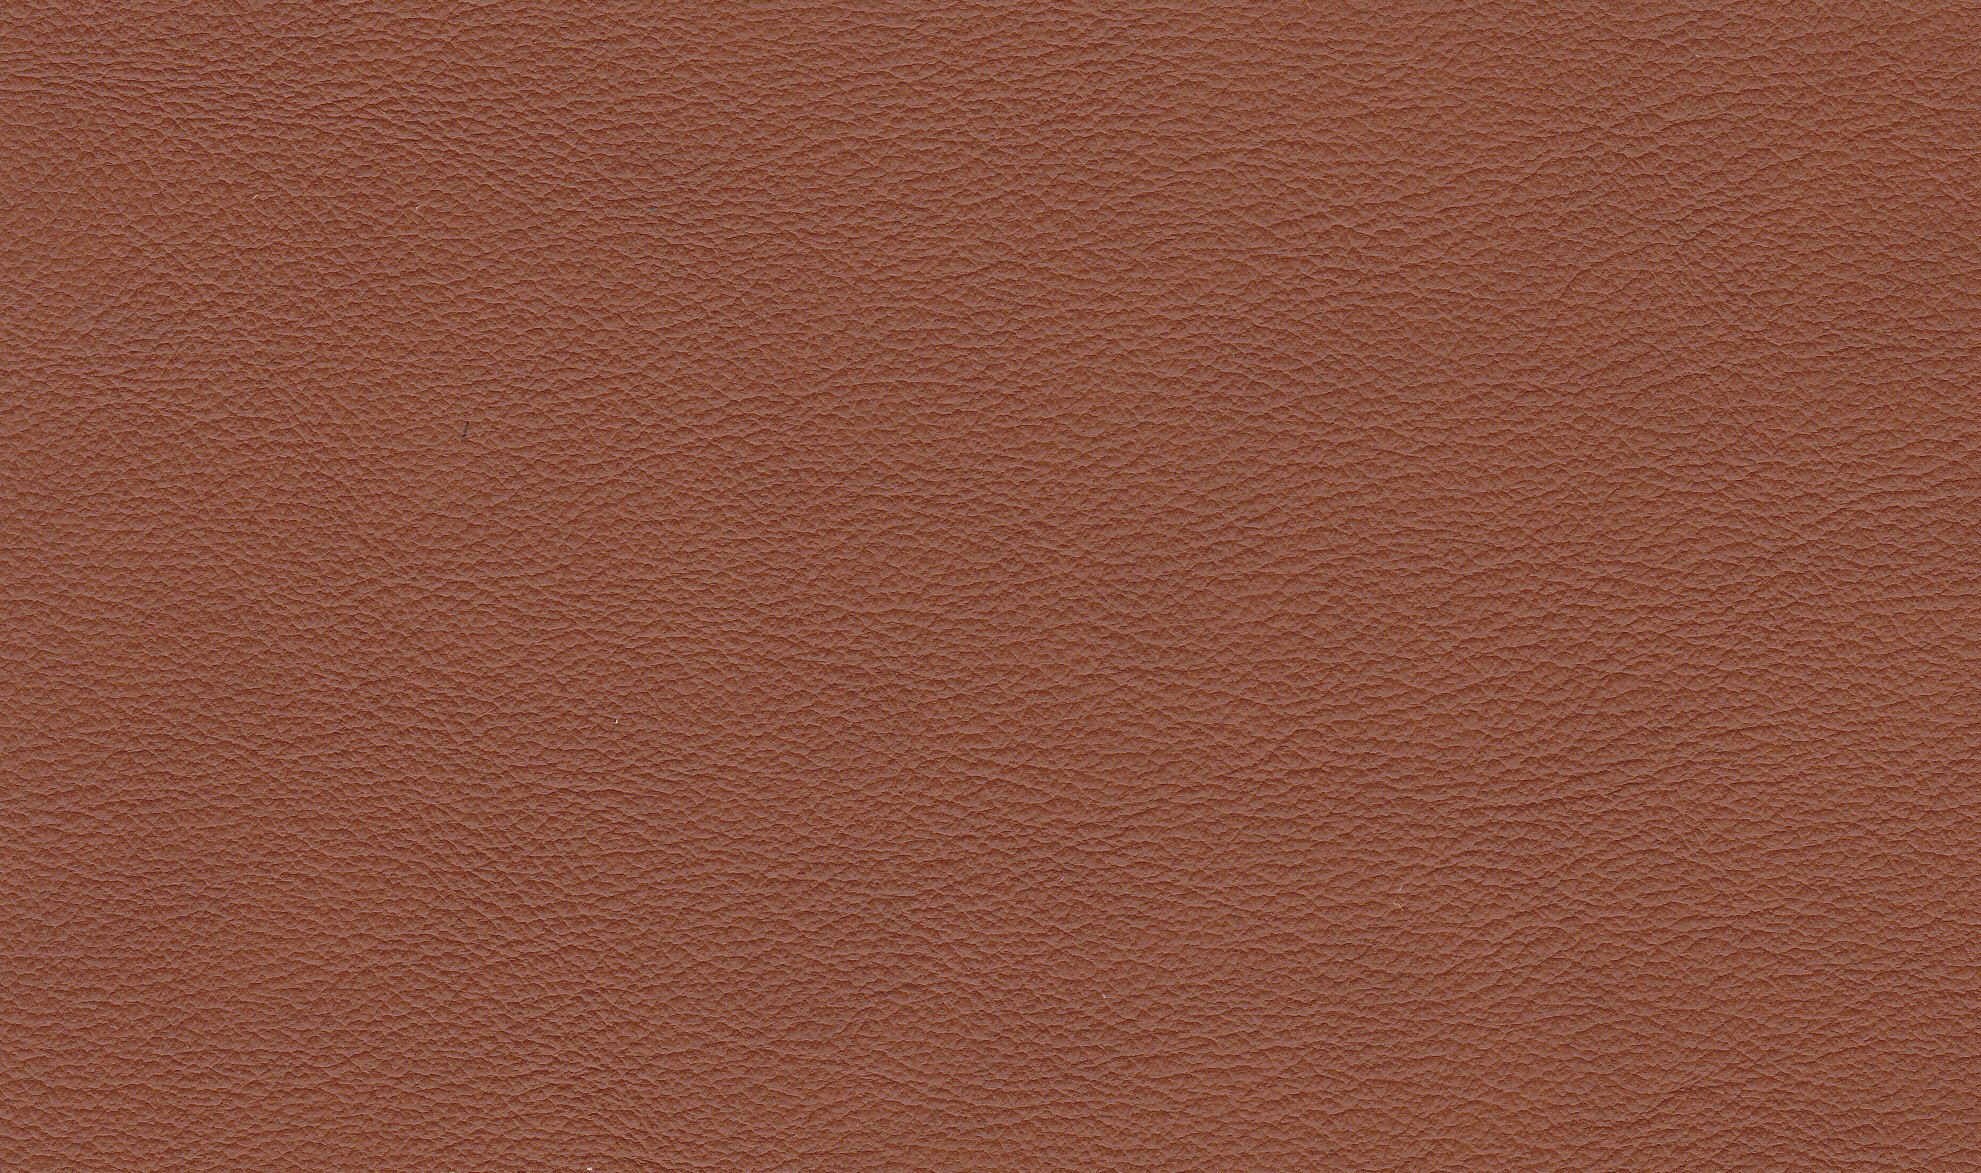 Liquid Amber(Two-Toned) Medici leather